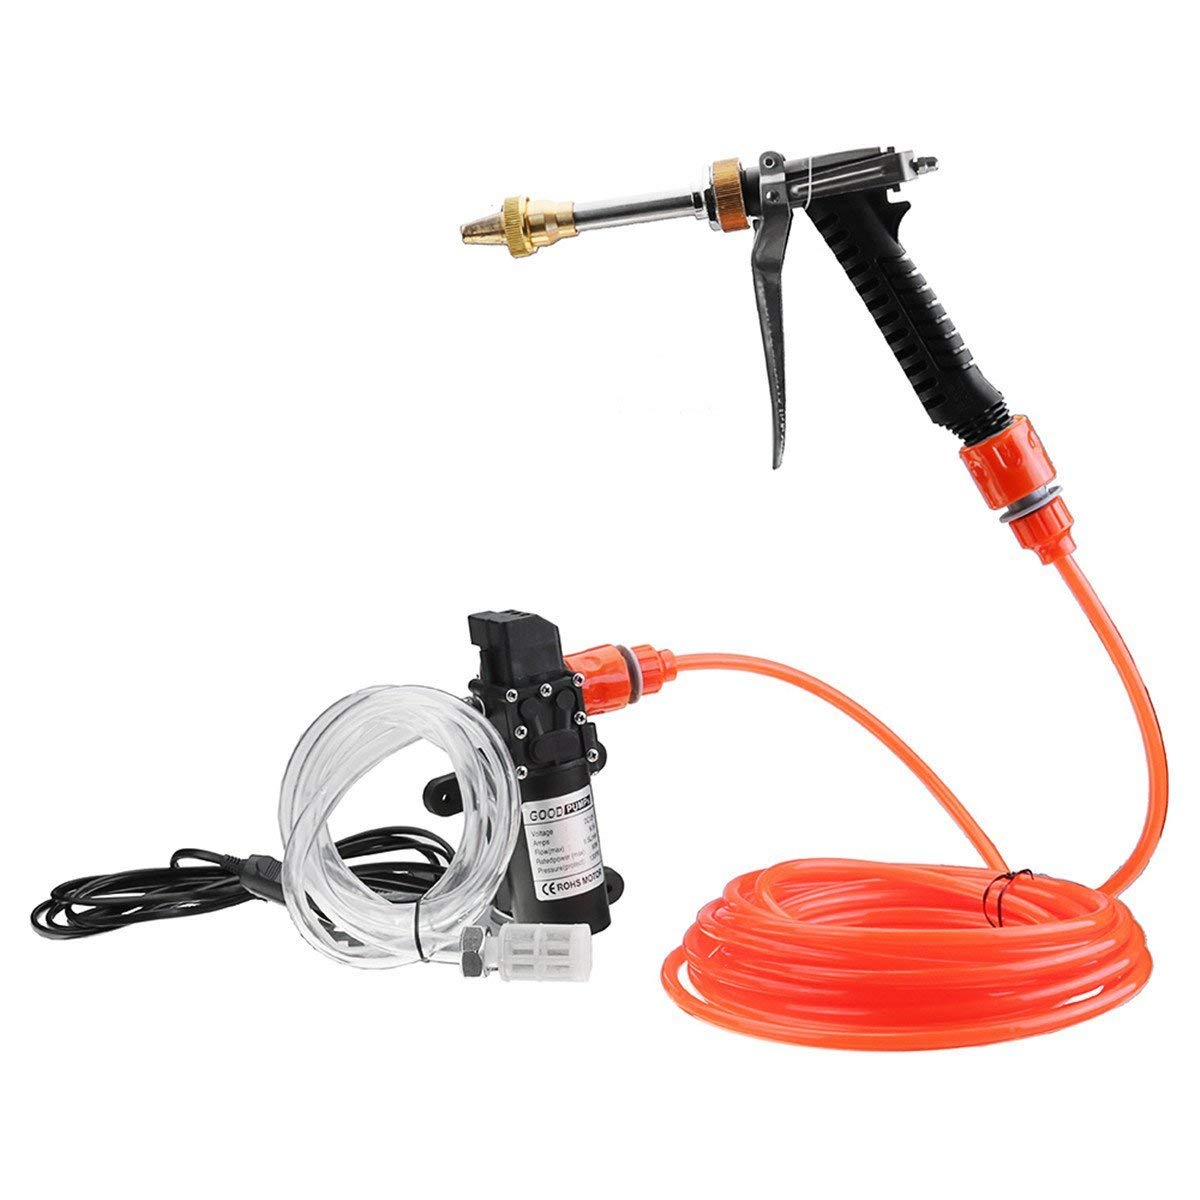 Electric Car Washer kit, 12 Volt Portable High Pressure Water Pump, Car Wash Device Fit for Auto RV Marine,Pets Showering,Window Cleaning,Gardening and Camping